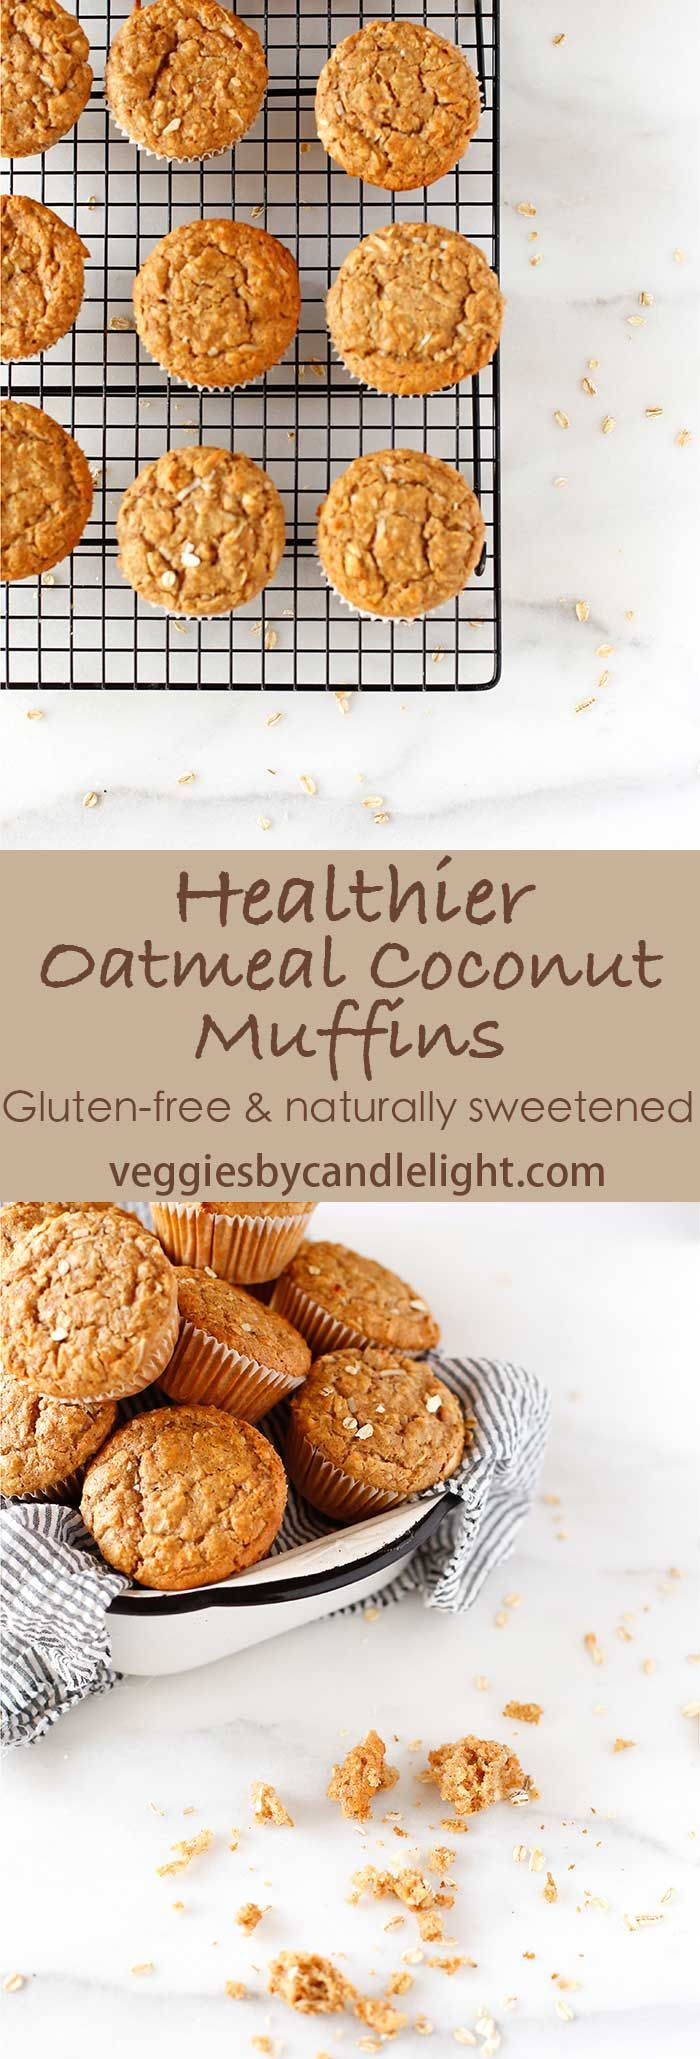 Healthier Oatmeal Coconut Muffins - Gluten-free & naturally sweetened .. these muffins are tender, fluffy, and not overly heavy.